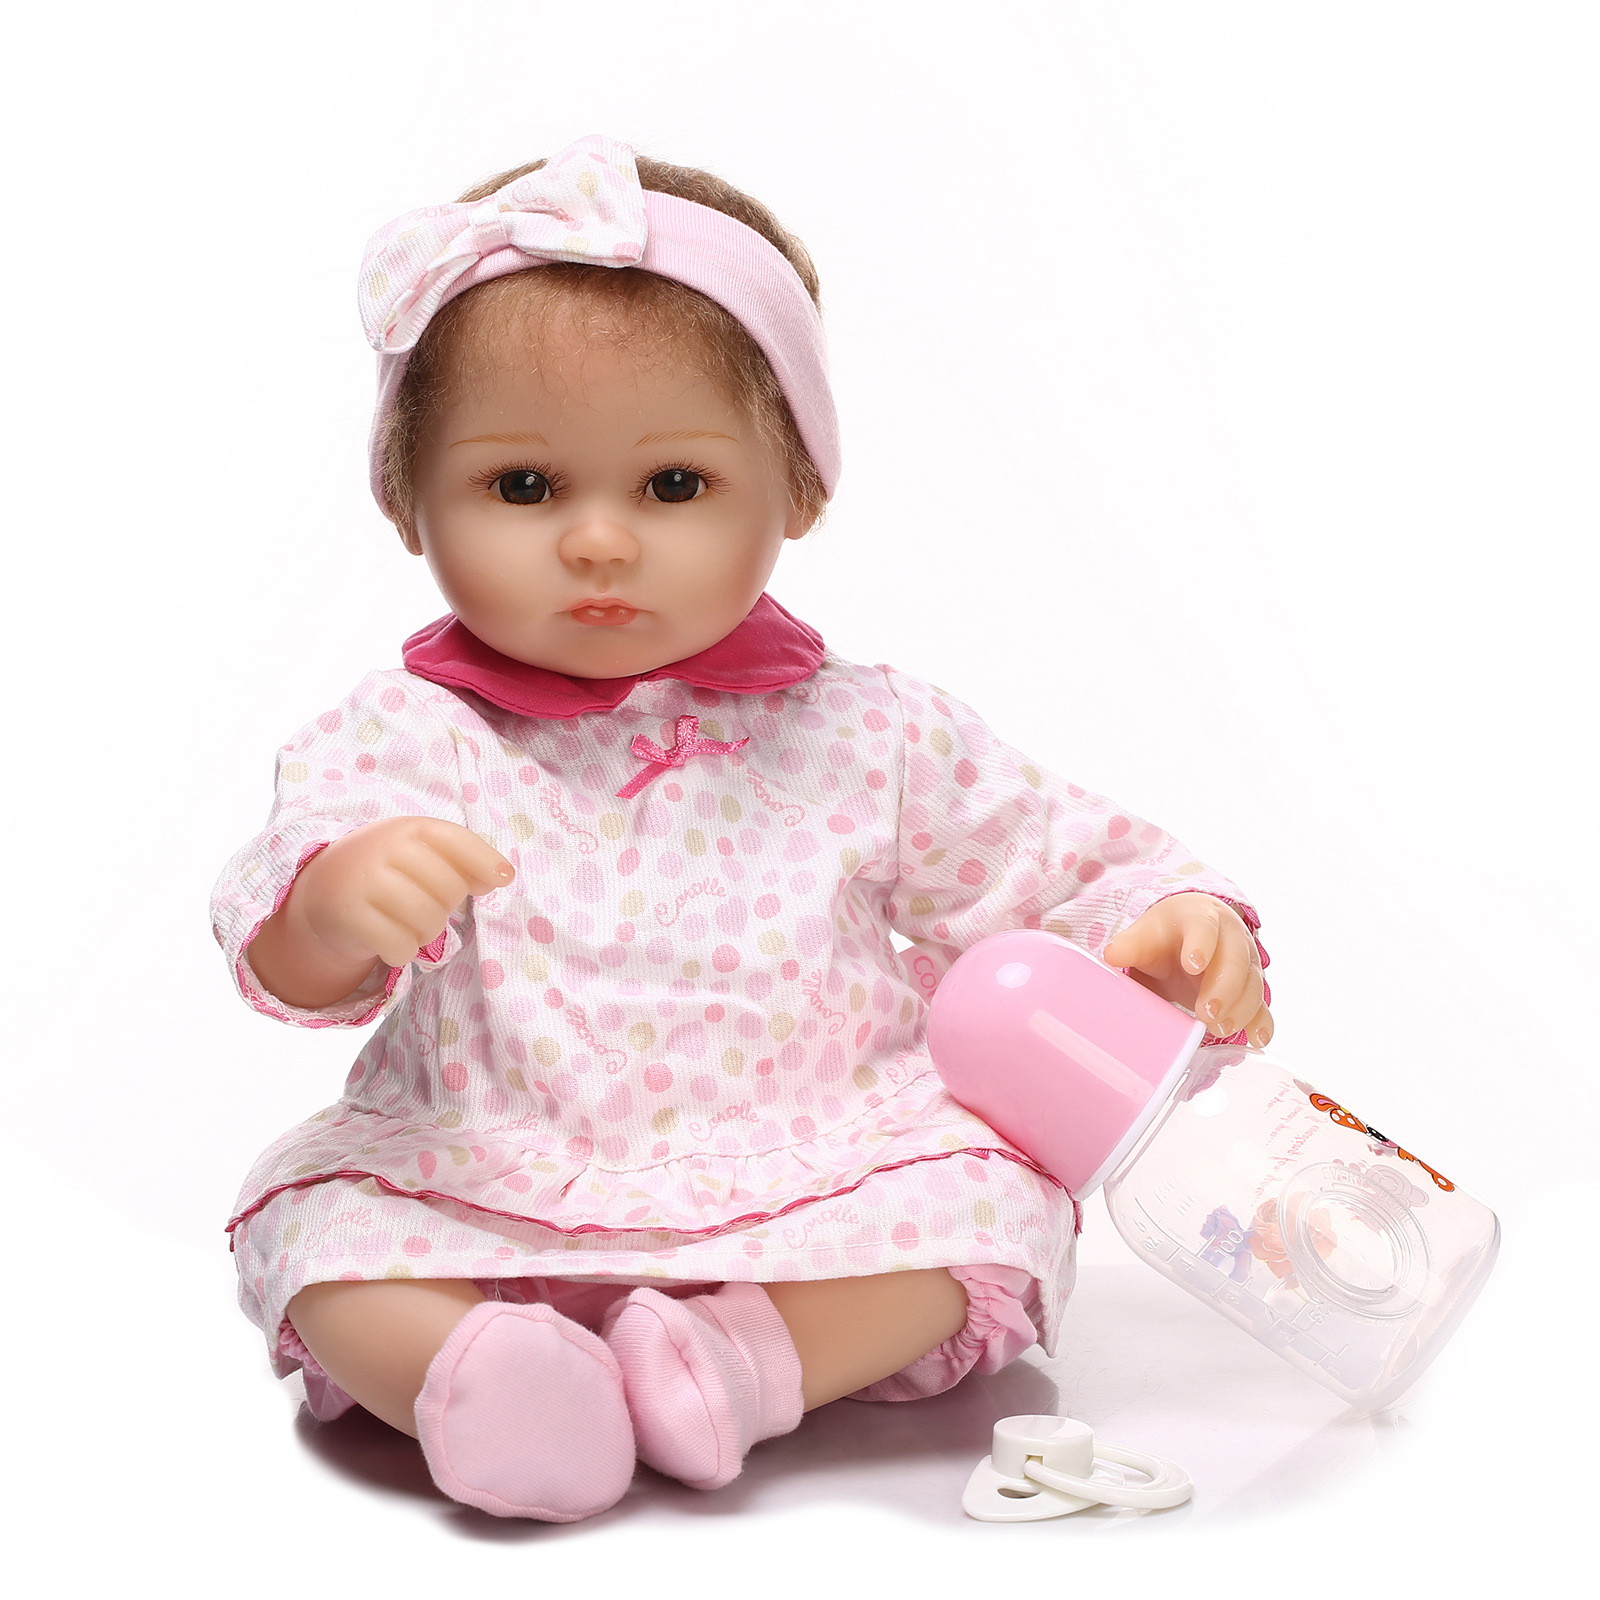 40cm Soft Silica gel Doll Reborn Baby Appease Doll Lifelike Babies play play house toy for Childrens Christmas Birthday Gift40cm Soft Silica gel Doll Reborn Baby Appease Doll Lifelike Babies play play house toy for Childrens Christmas Birthday Gift